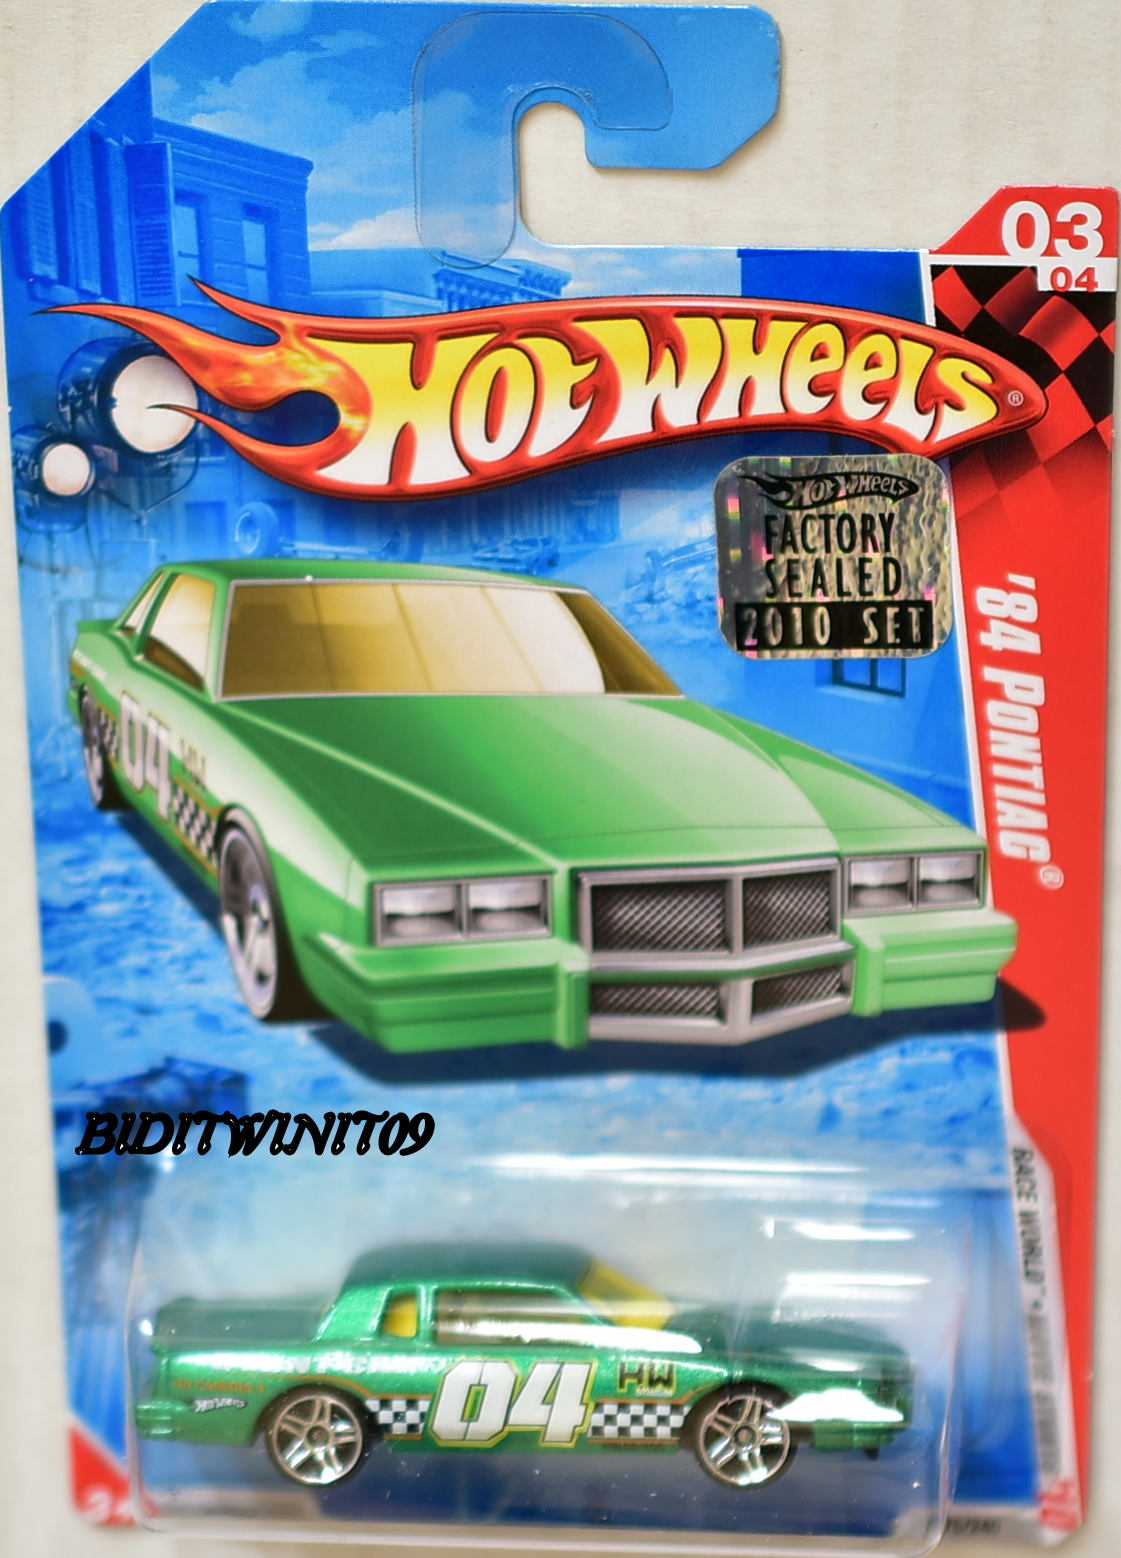 HOT WHEELS 2010 #03/04 '84 PONTIAC RACE WORLD GREEN FACTORY SEALED E+